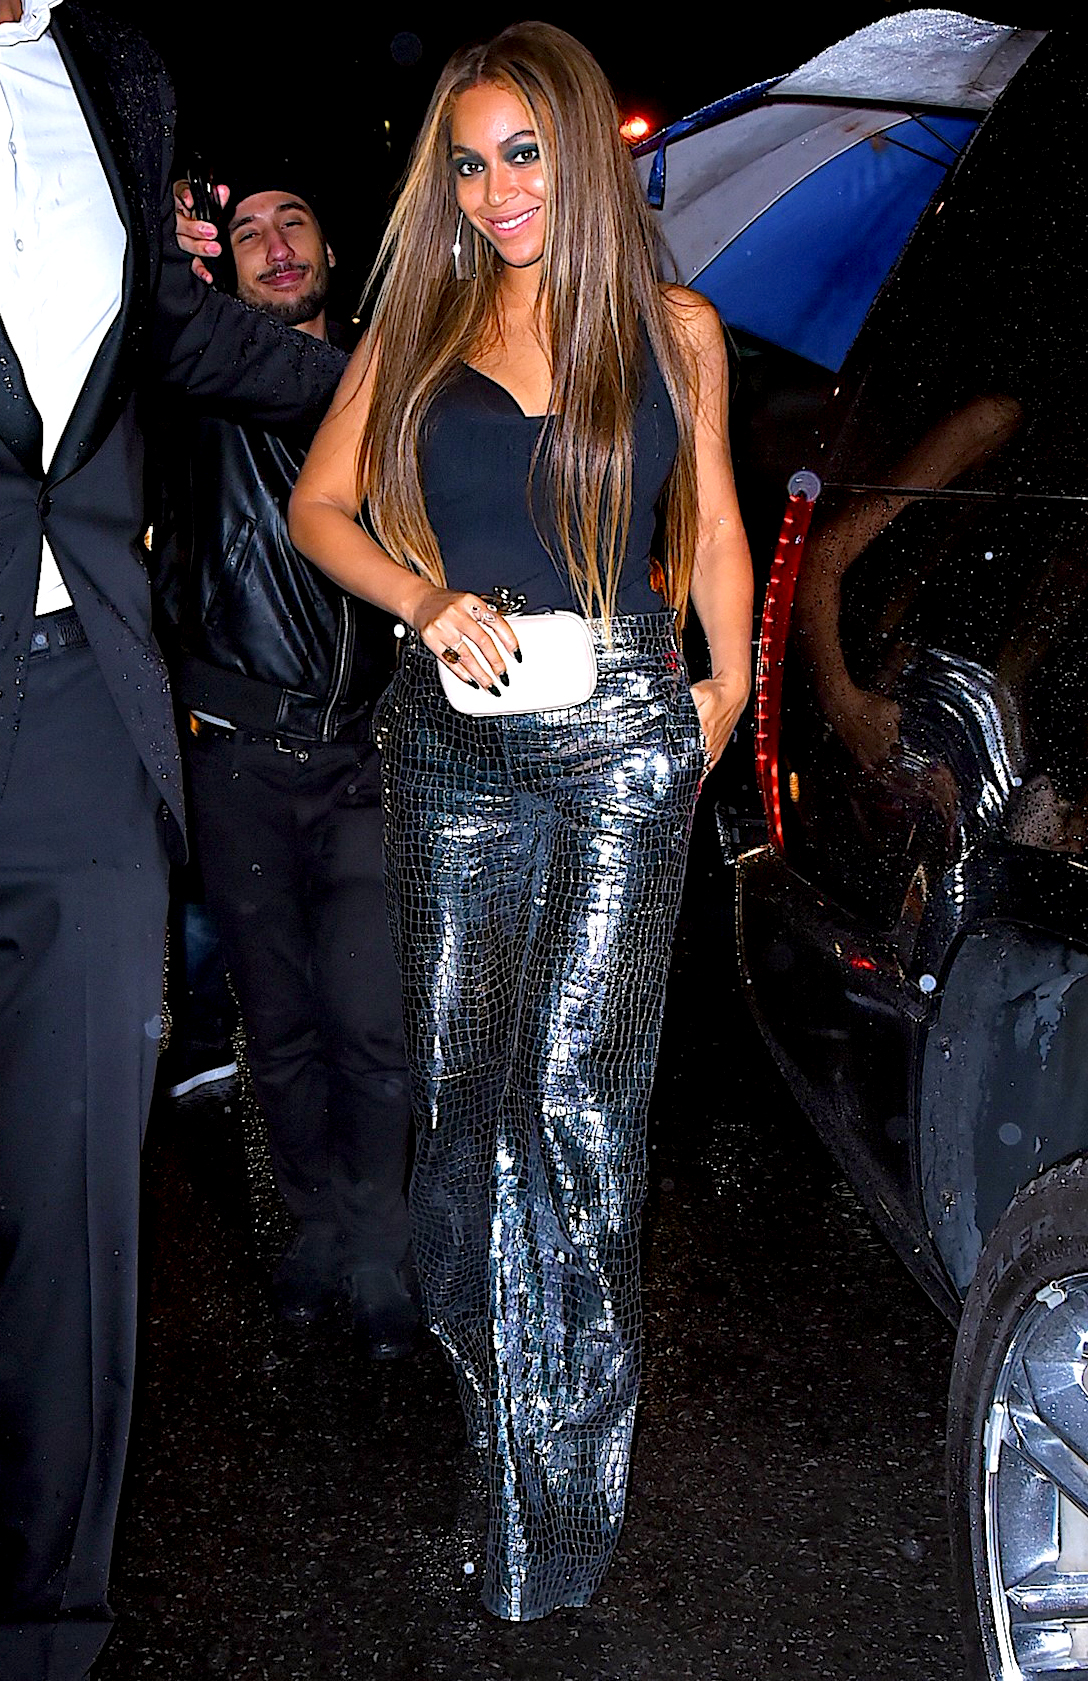 Gilded-Lily-Beyonce - Balmain invited celebrities including Beyoncé , Kim Kardashian , Kanye West , Kris Jenner , Jaden Smith and Cindy Crawford to the posh club located below The Monarch Room.